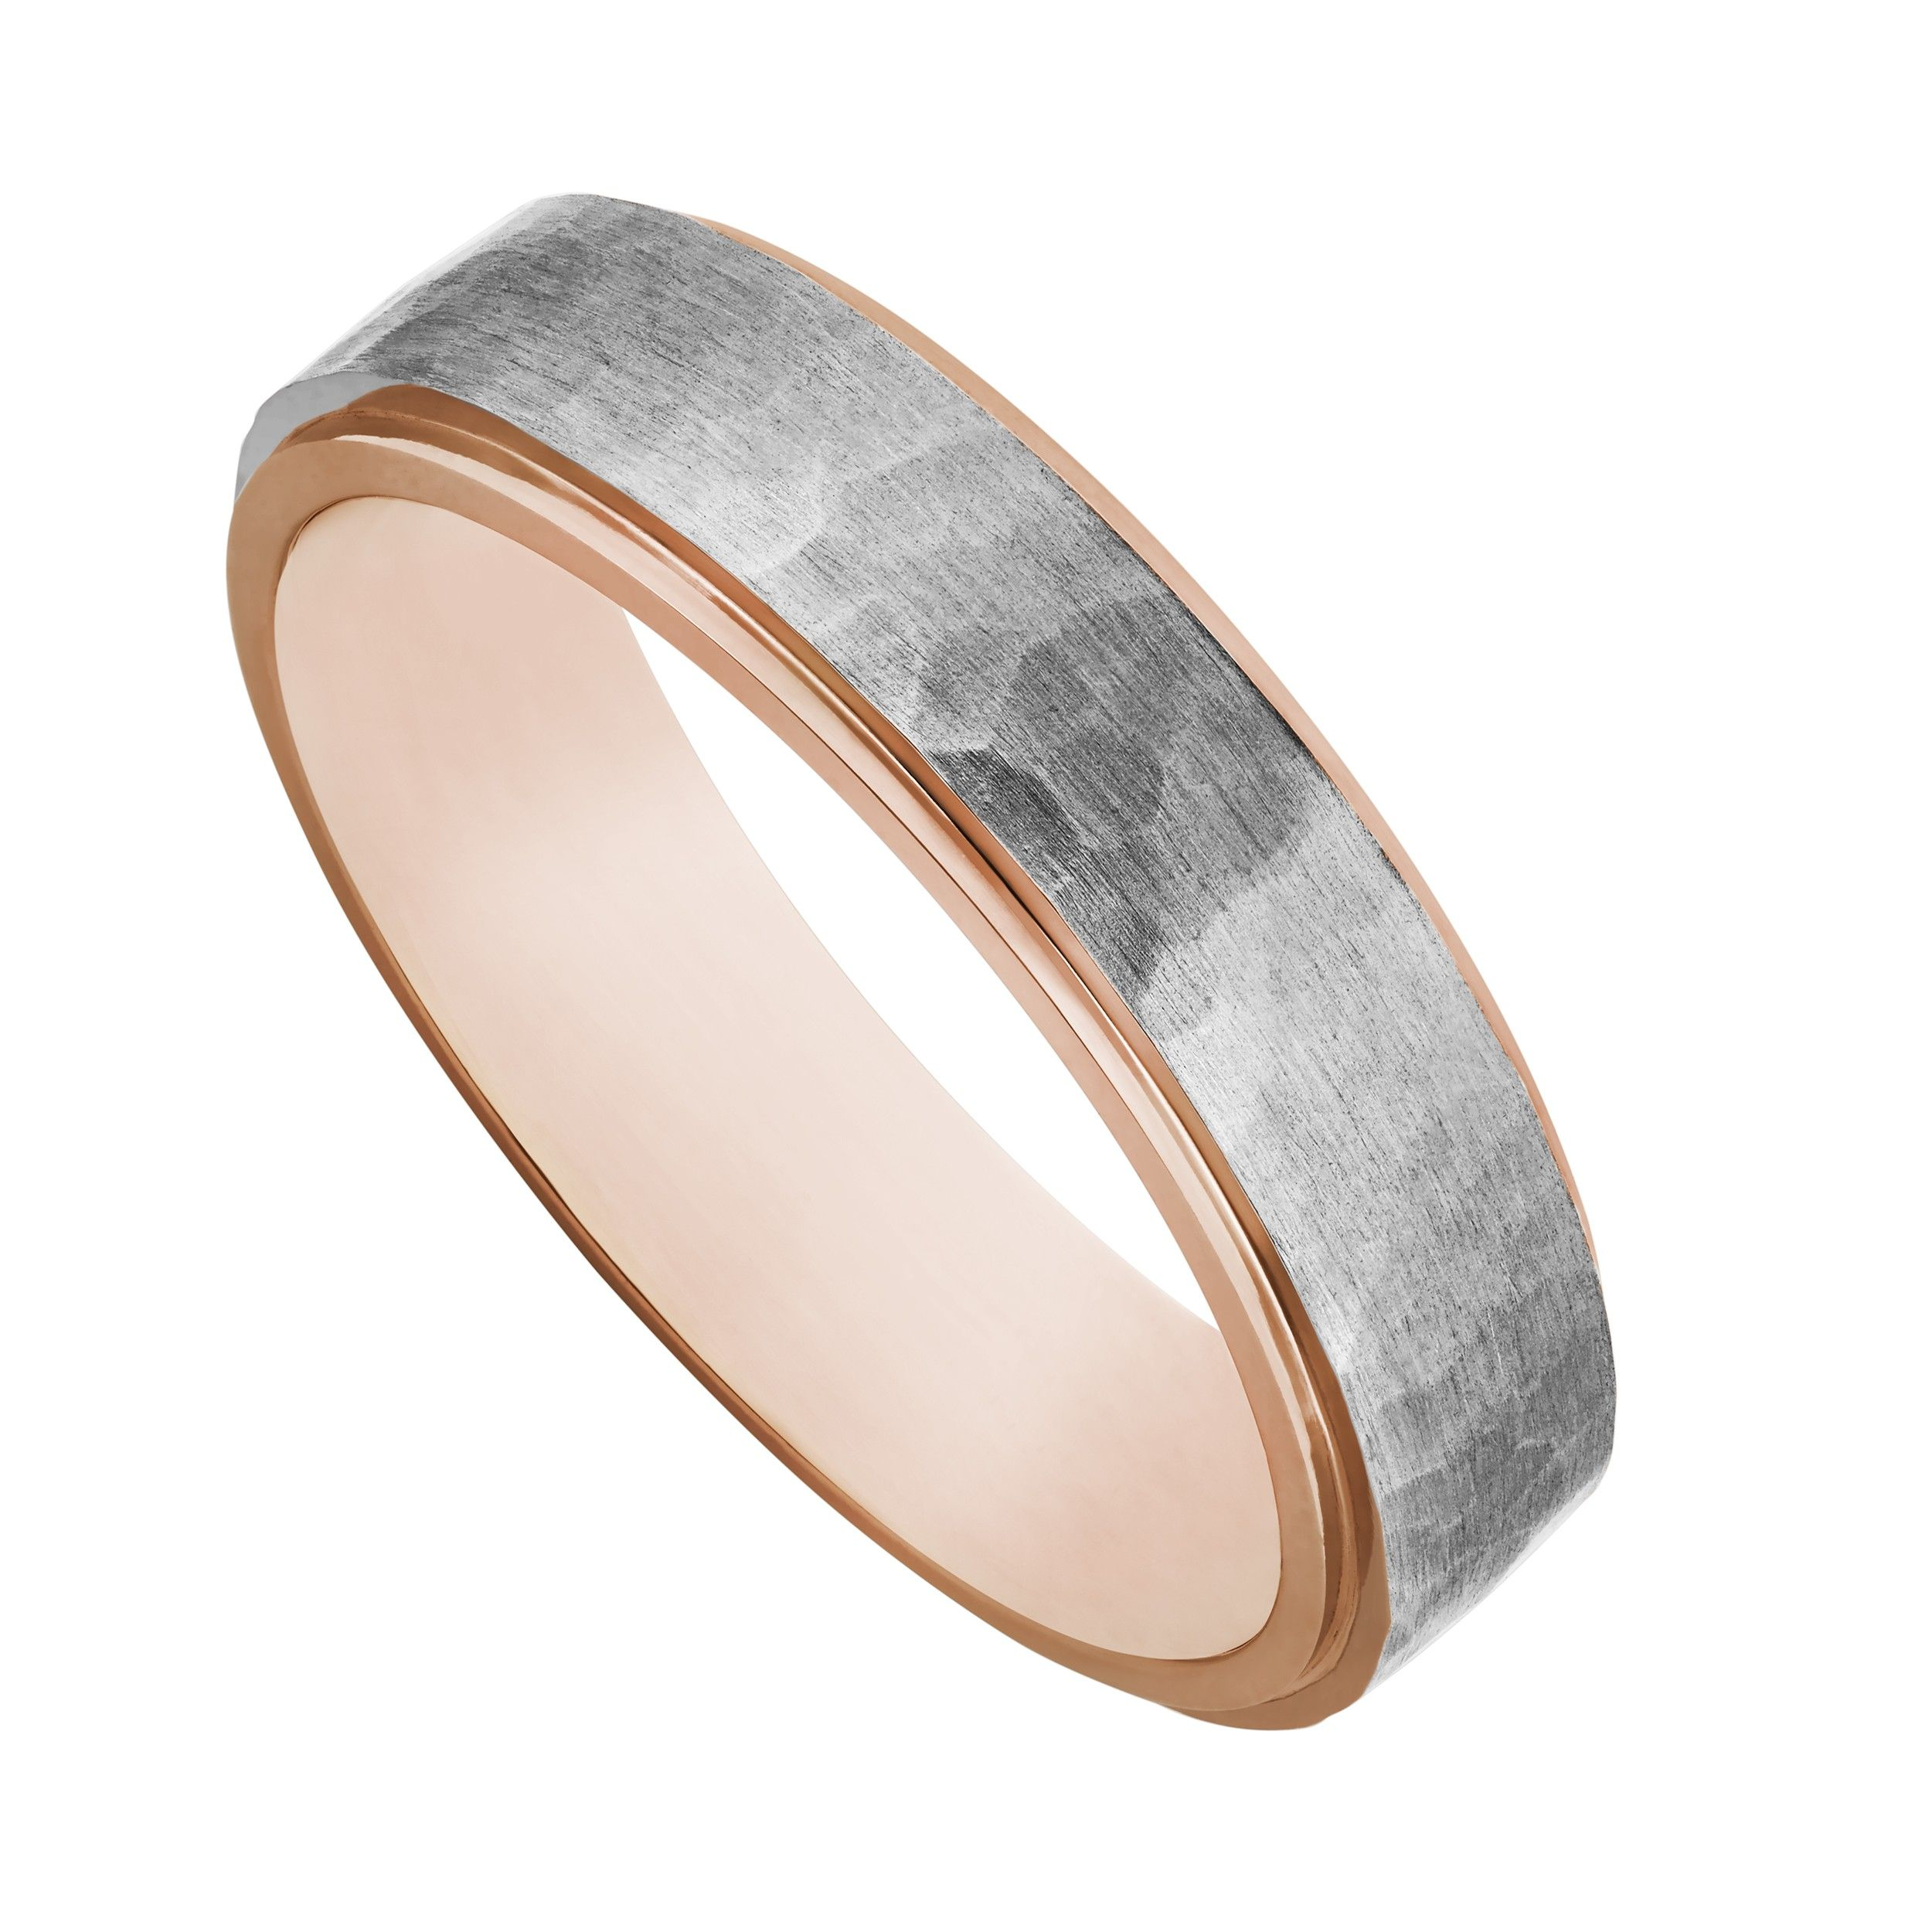 hand bands mobius dune wedding white mens band mccaul carved gold textured rings unique